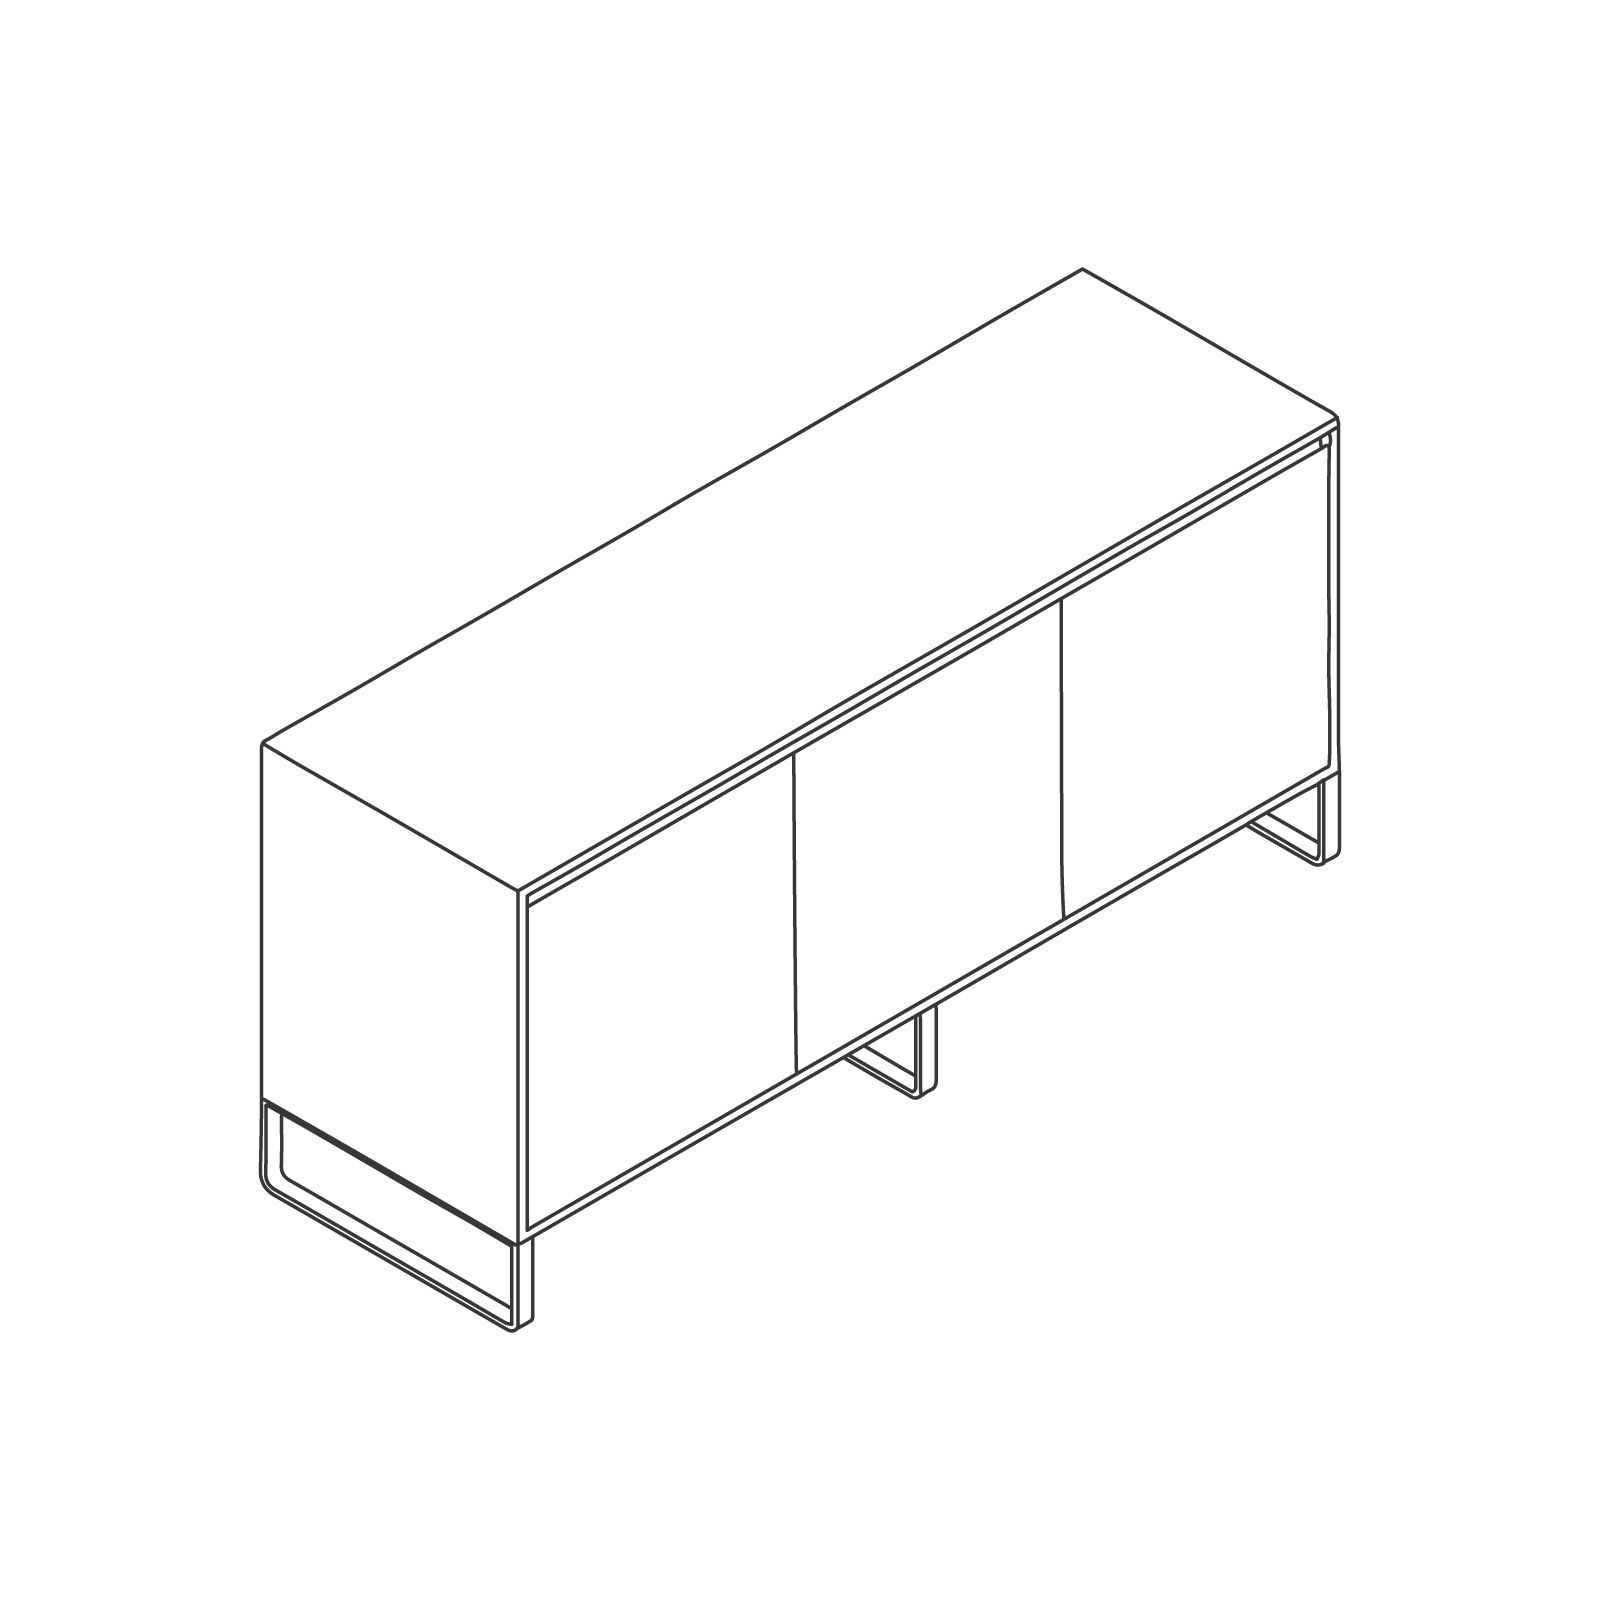 A line drawing of Sideboard Storage–3 Door.